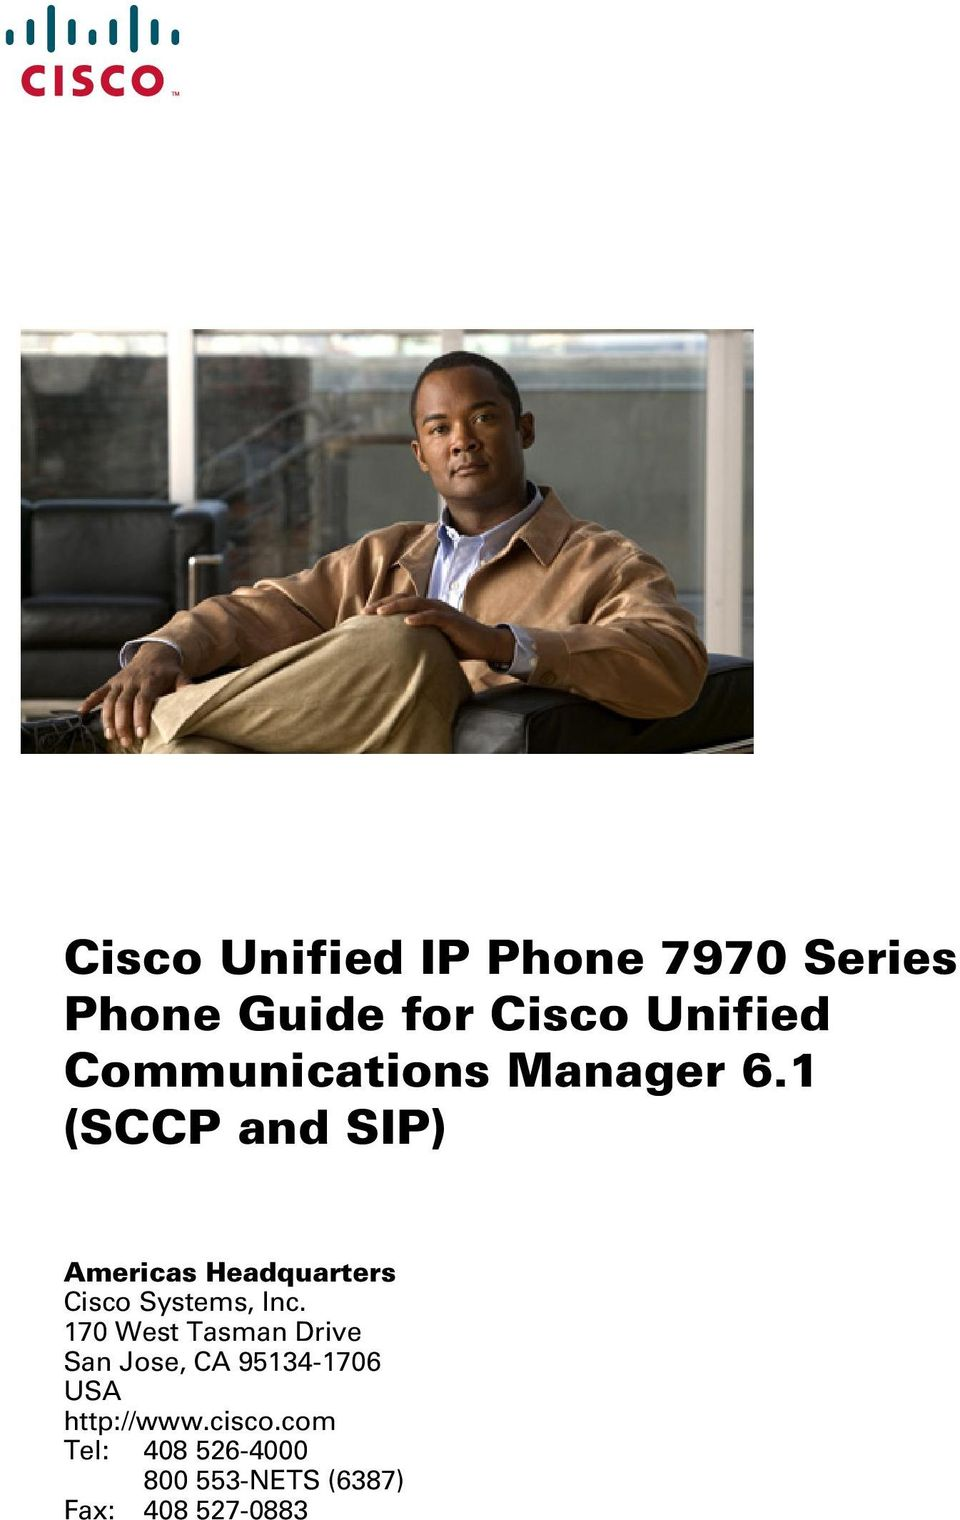 1 (SCCP and SIP) Americas Headquarters Cisco Systems, Inc.